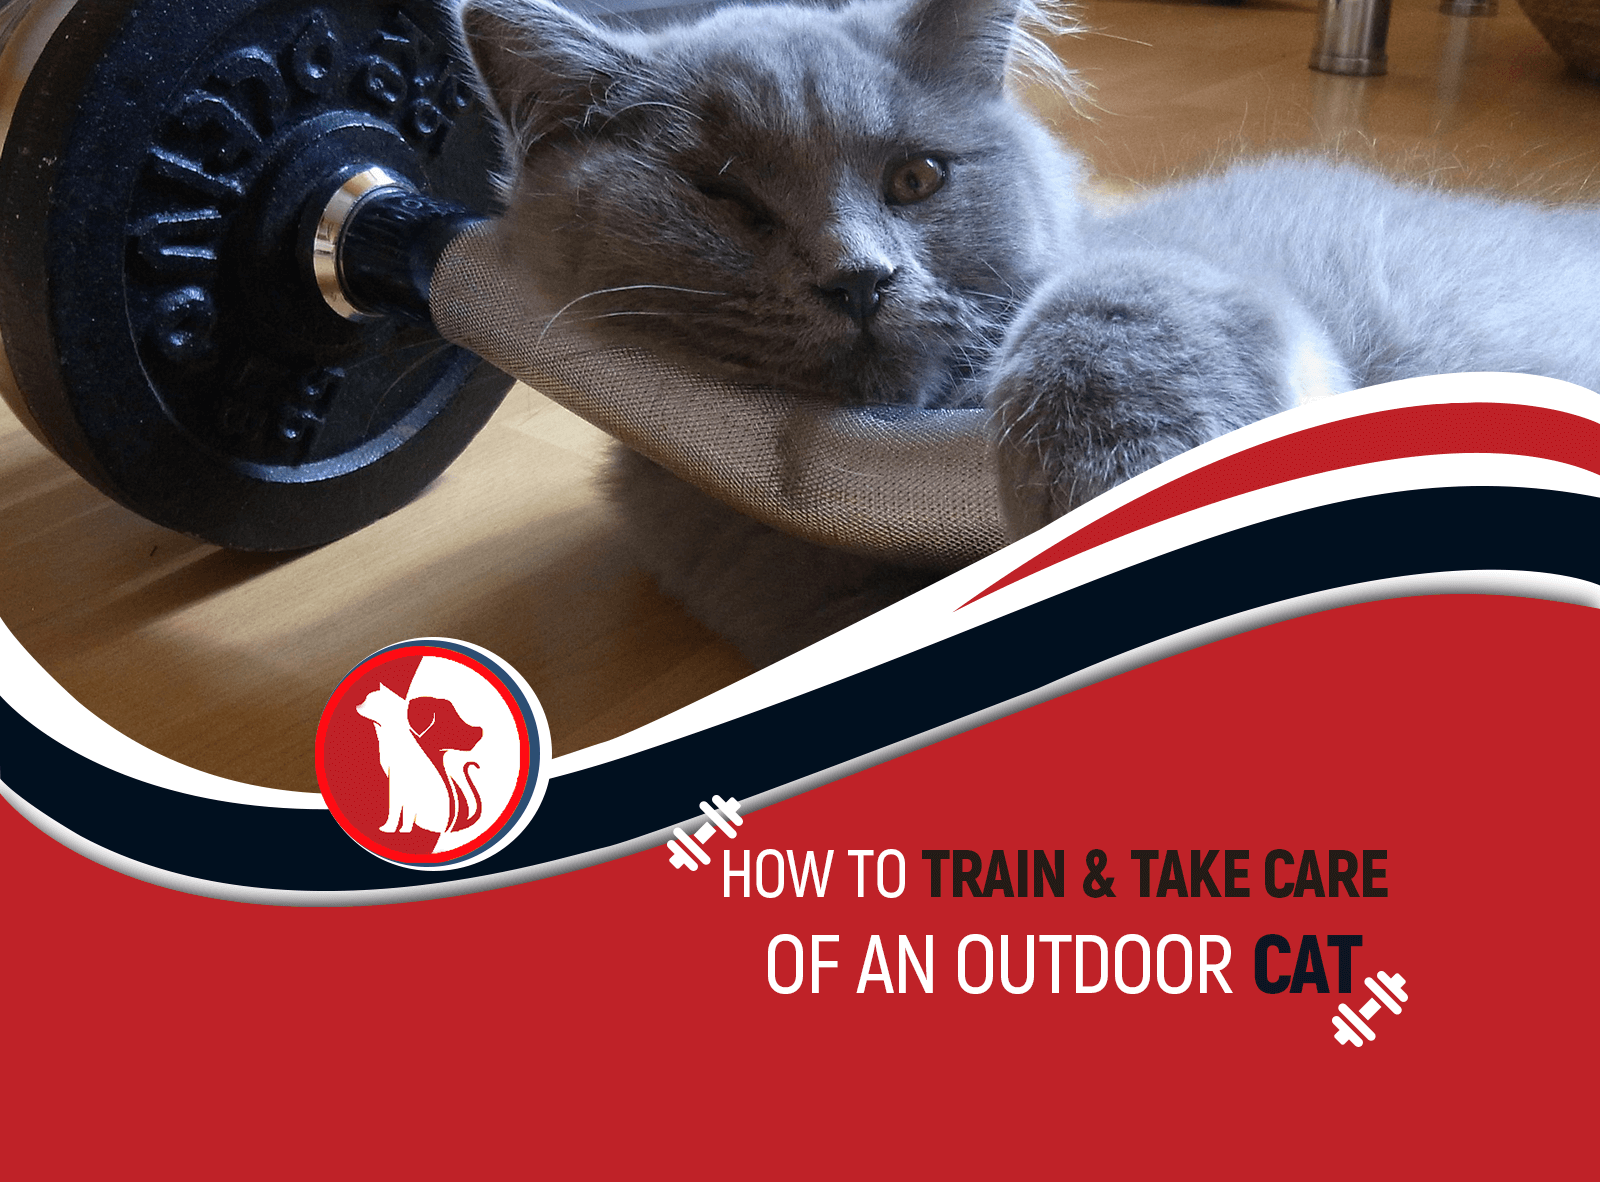 How to Train & Take Care of an Outdoor Cat